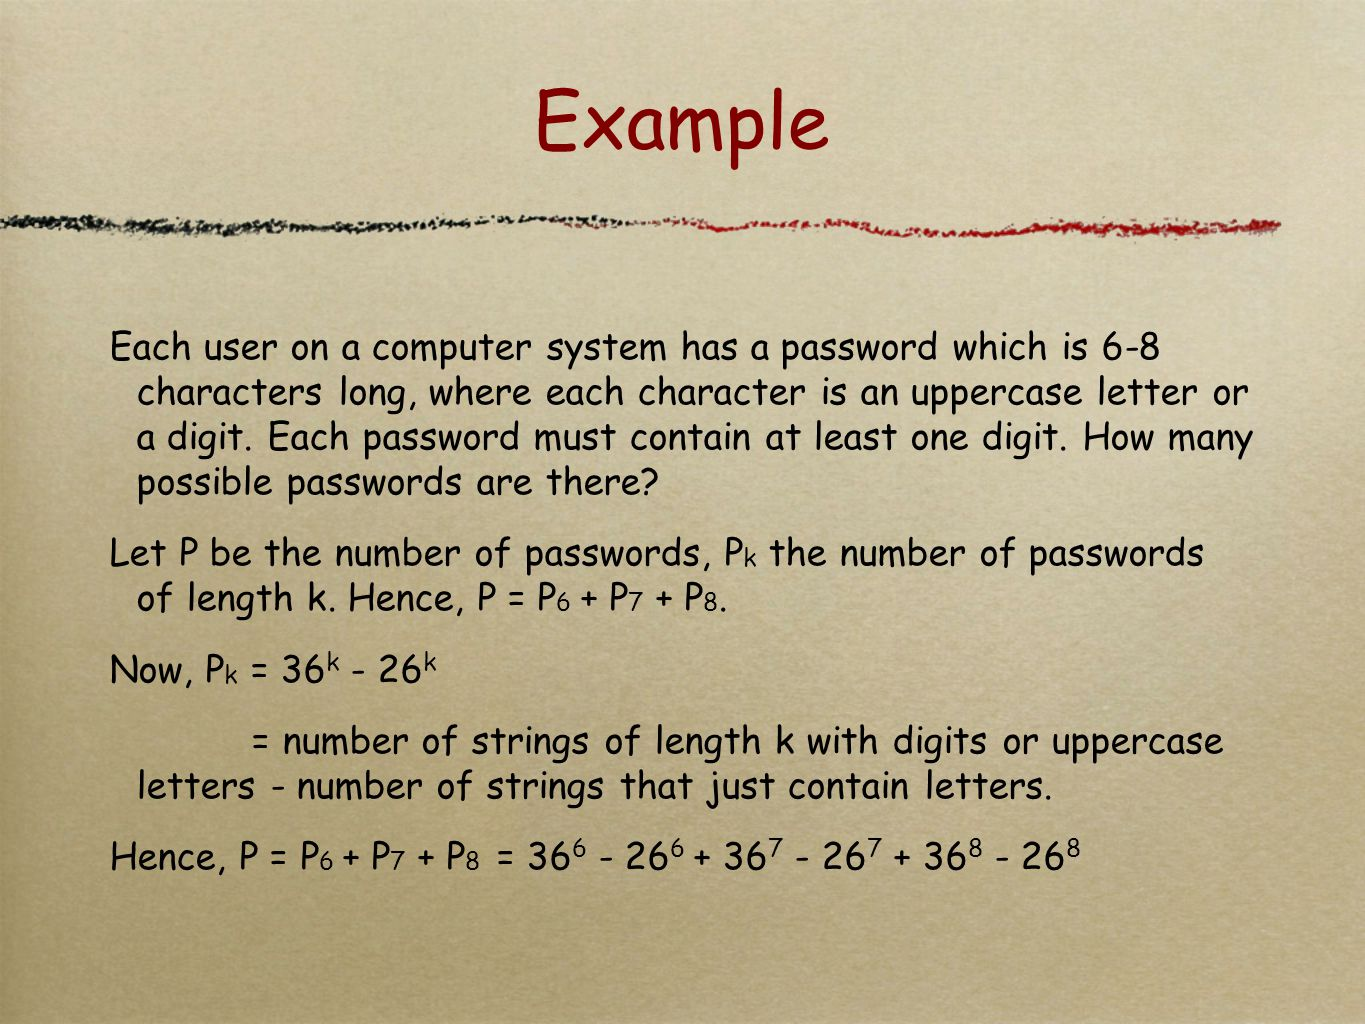 Example Each user on a computer system has a password which is 6-8 characters long, where each character is an uppercase letter or a digit.